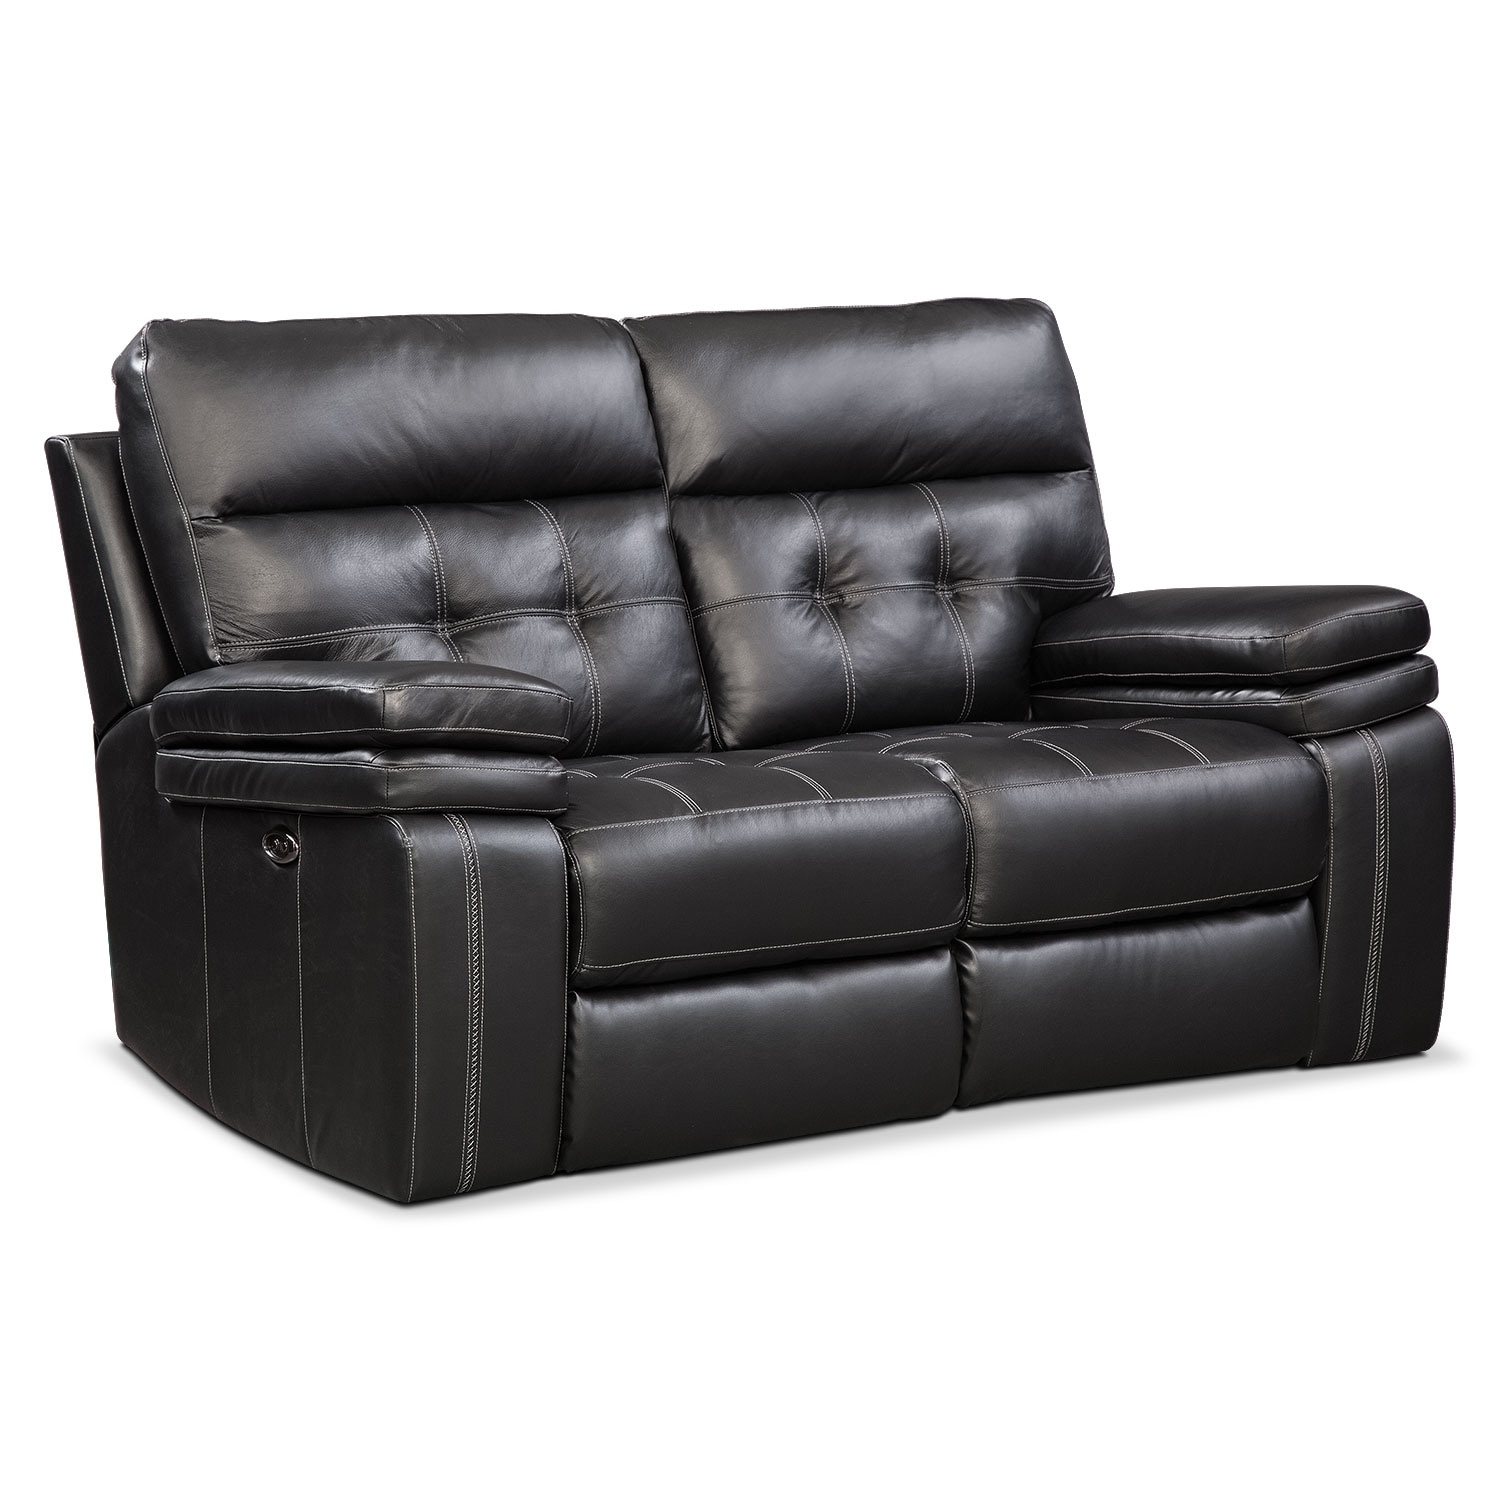 Brisco Power Reclining Loveseat   Black